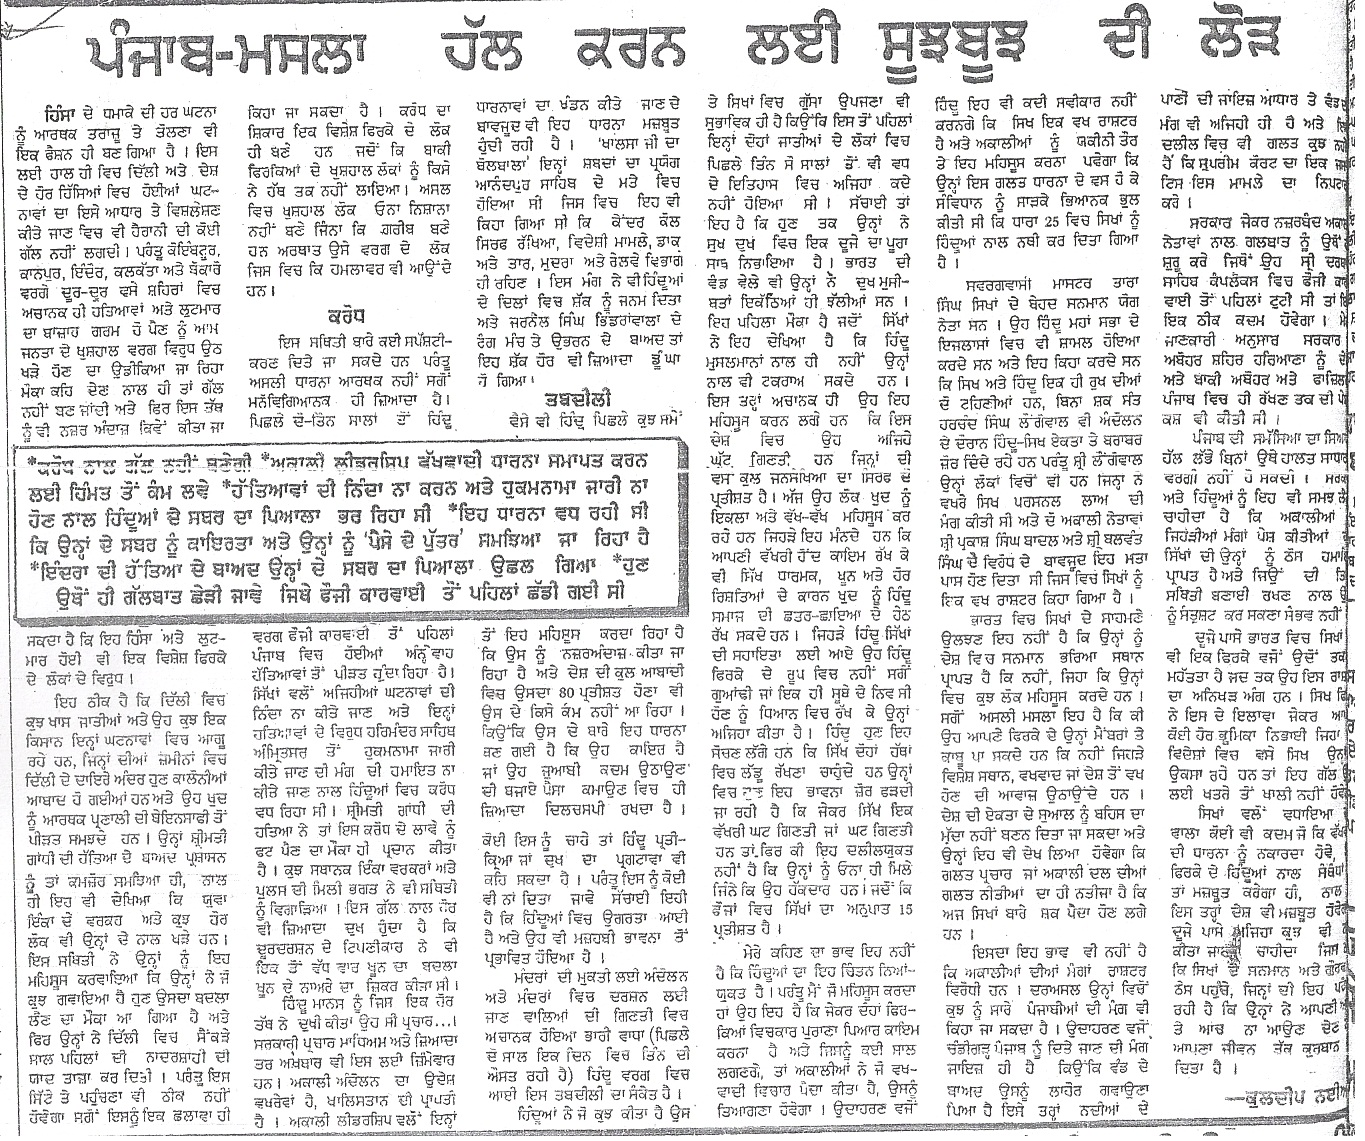 Kuldip Nayar Article published in Jag Bani [15 Nov 1984]